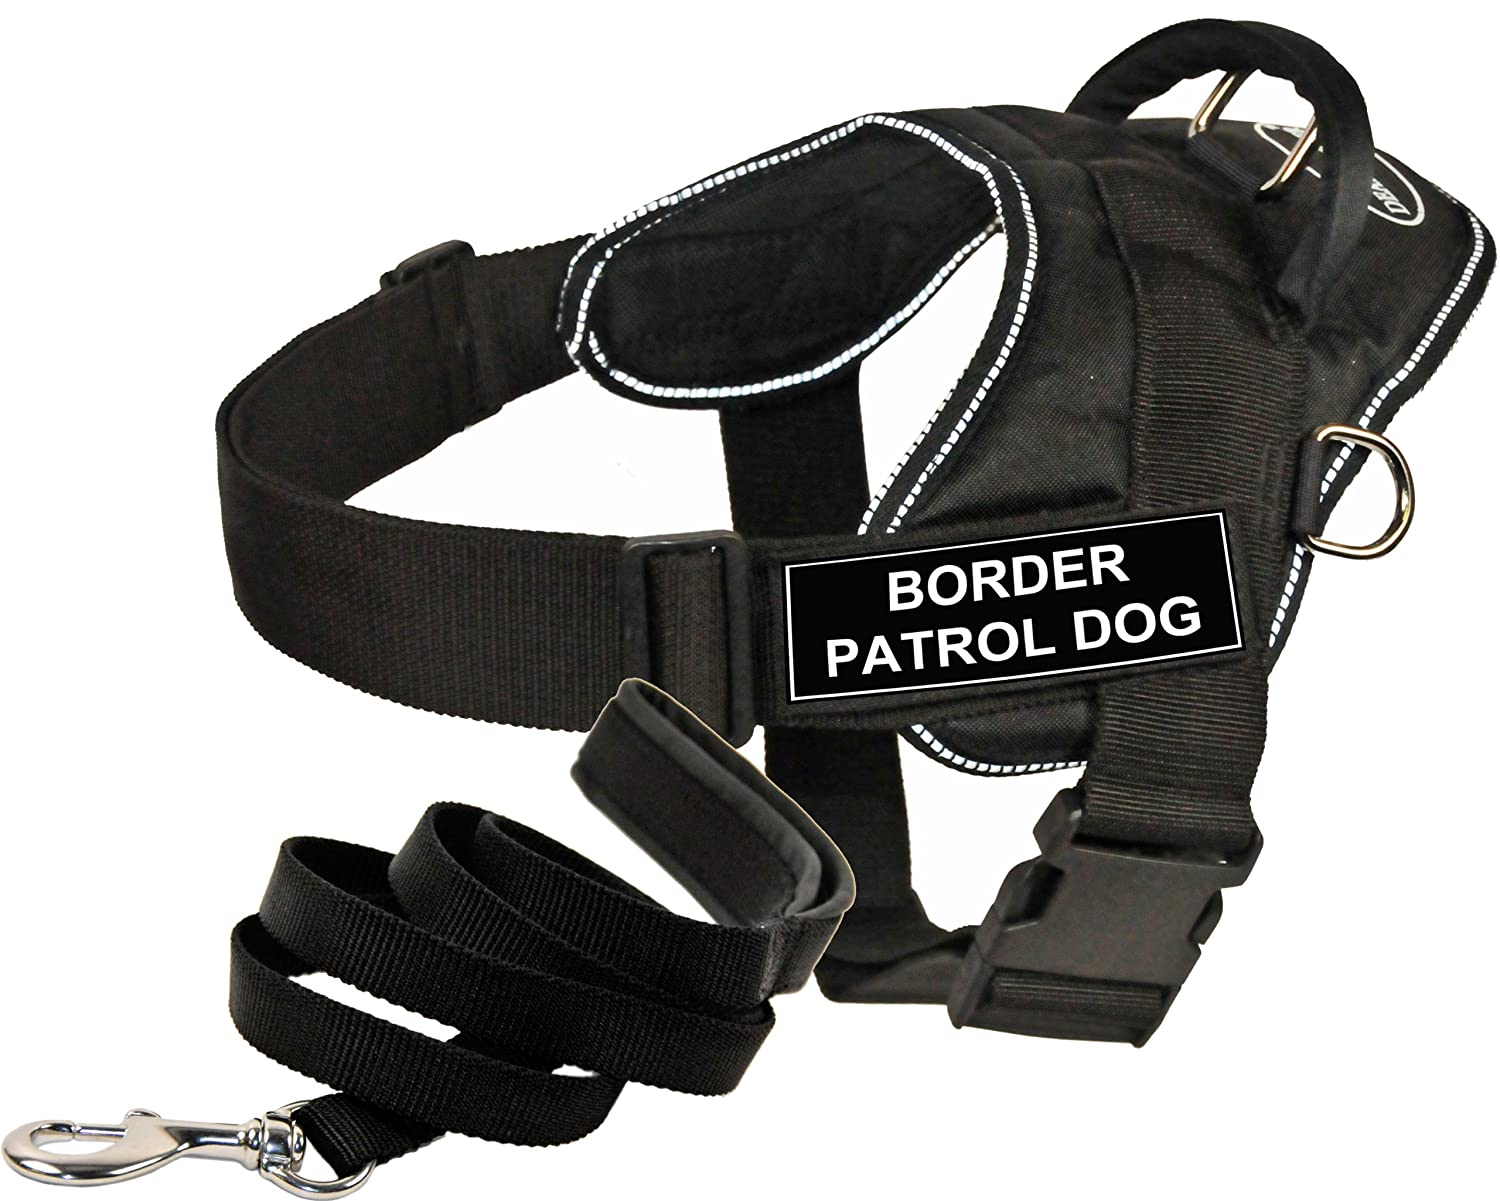 Dean and Tyler Bundle One DT Fun Works  Harness, Border Patrol Dog, Reflective, Small + One Padded Puppy  Leash, 6 FT Stainless Snap Black